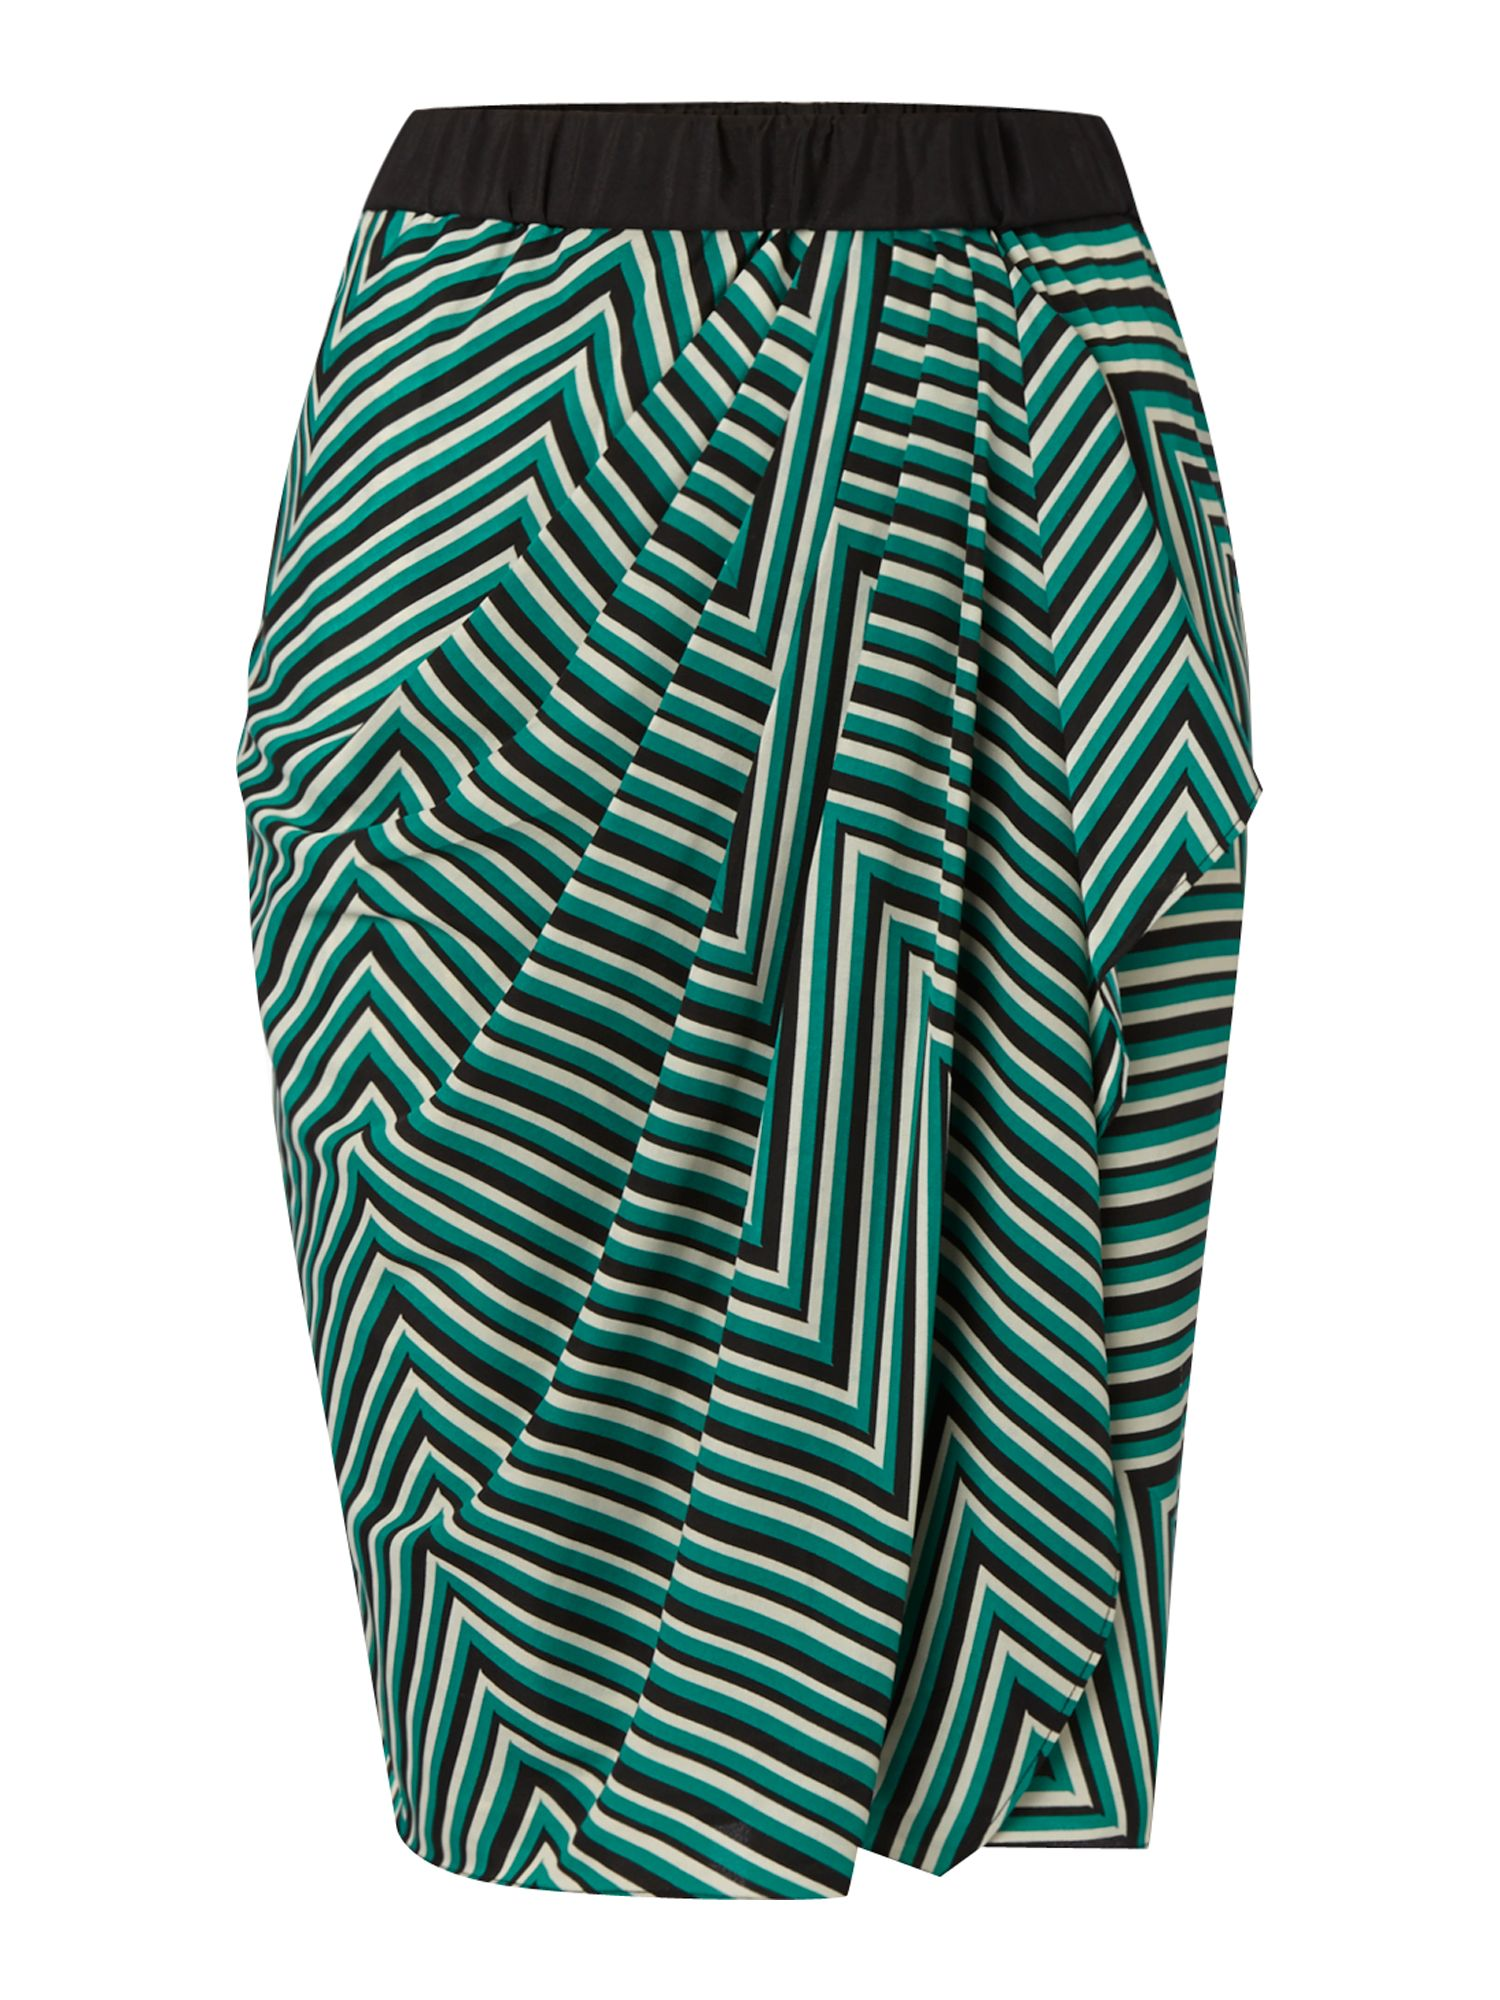 Cutabout stripe wrap skirt